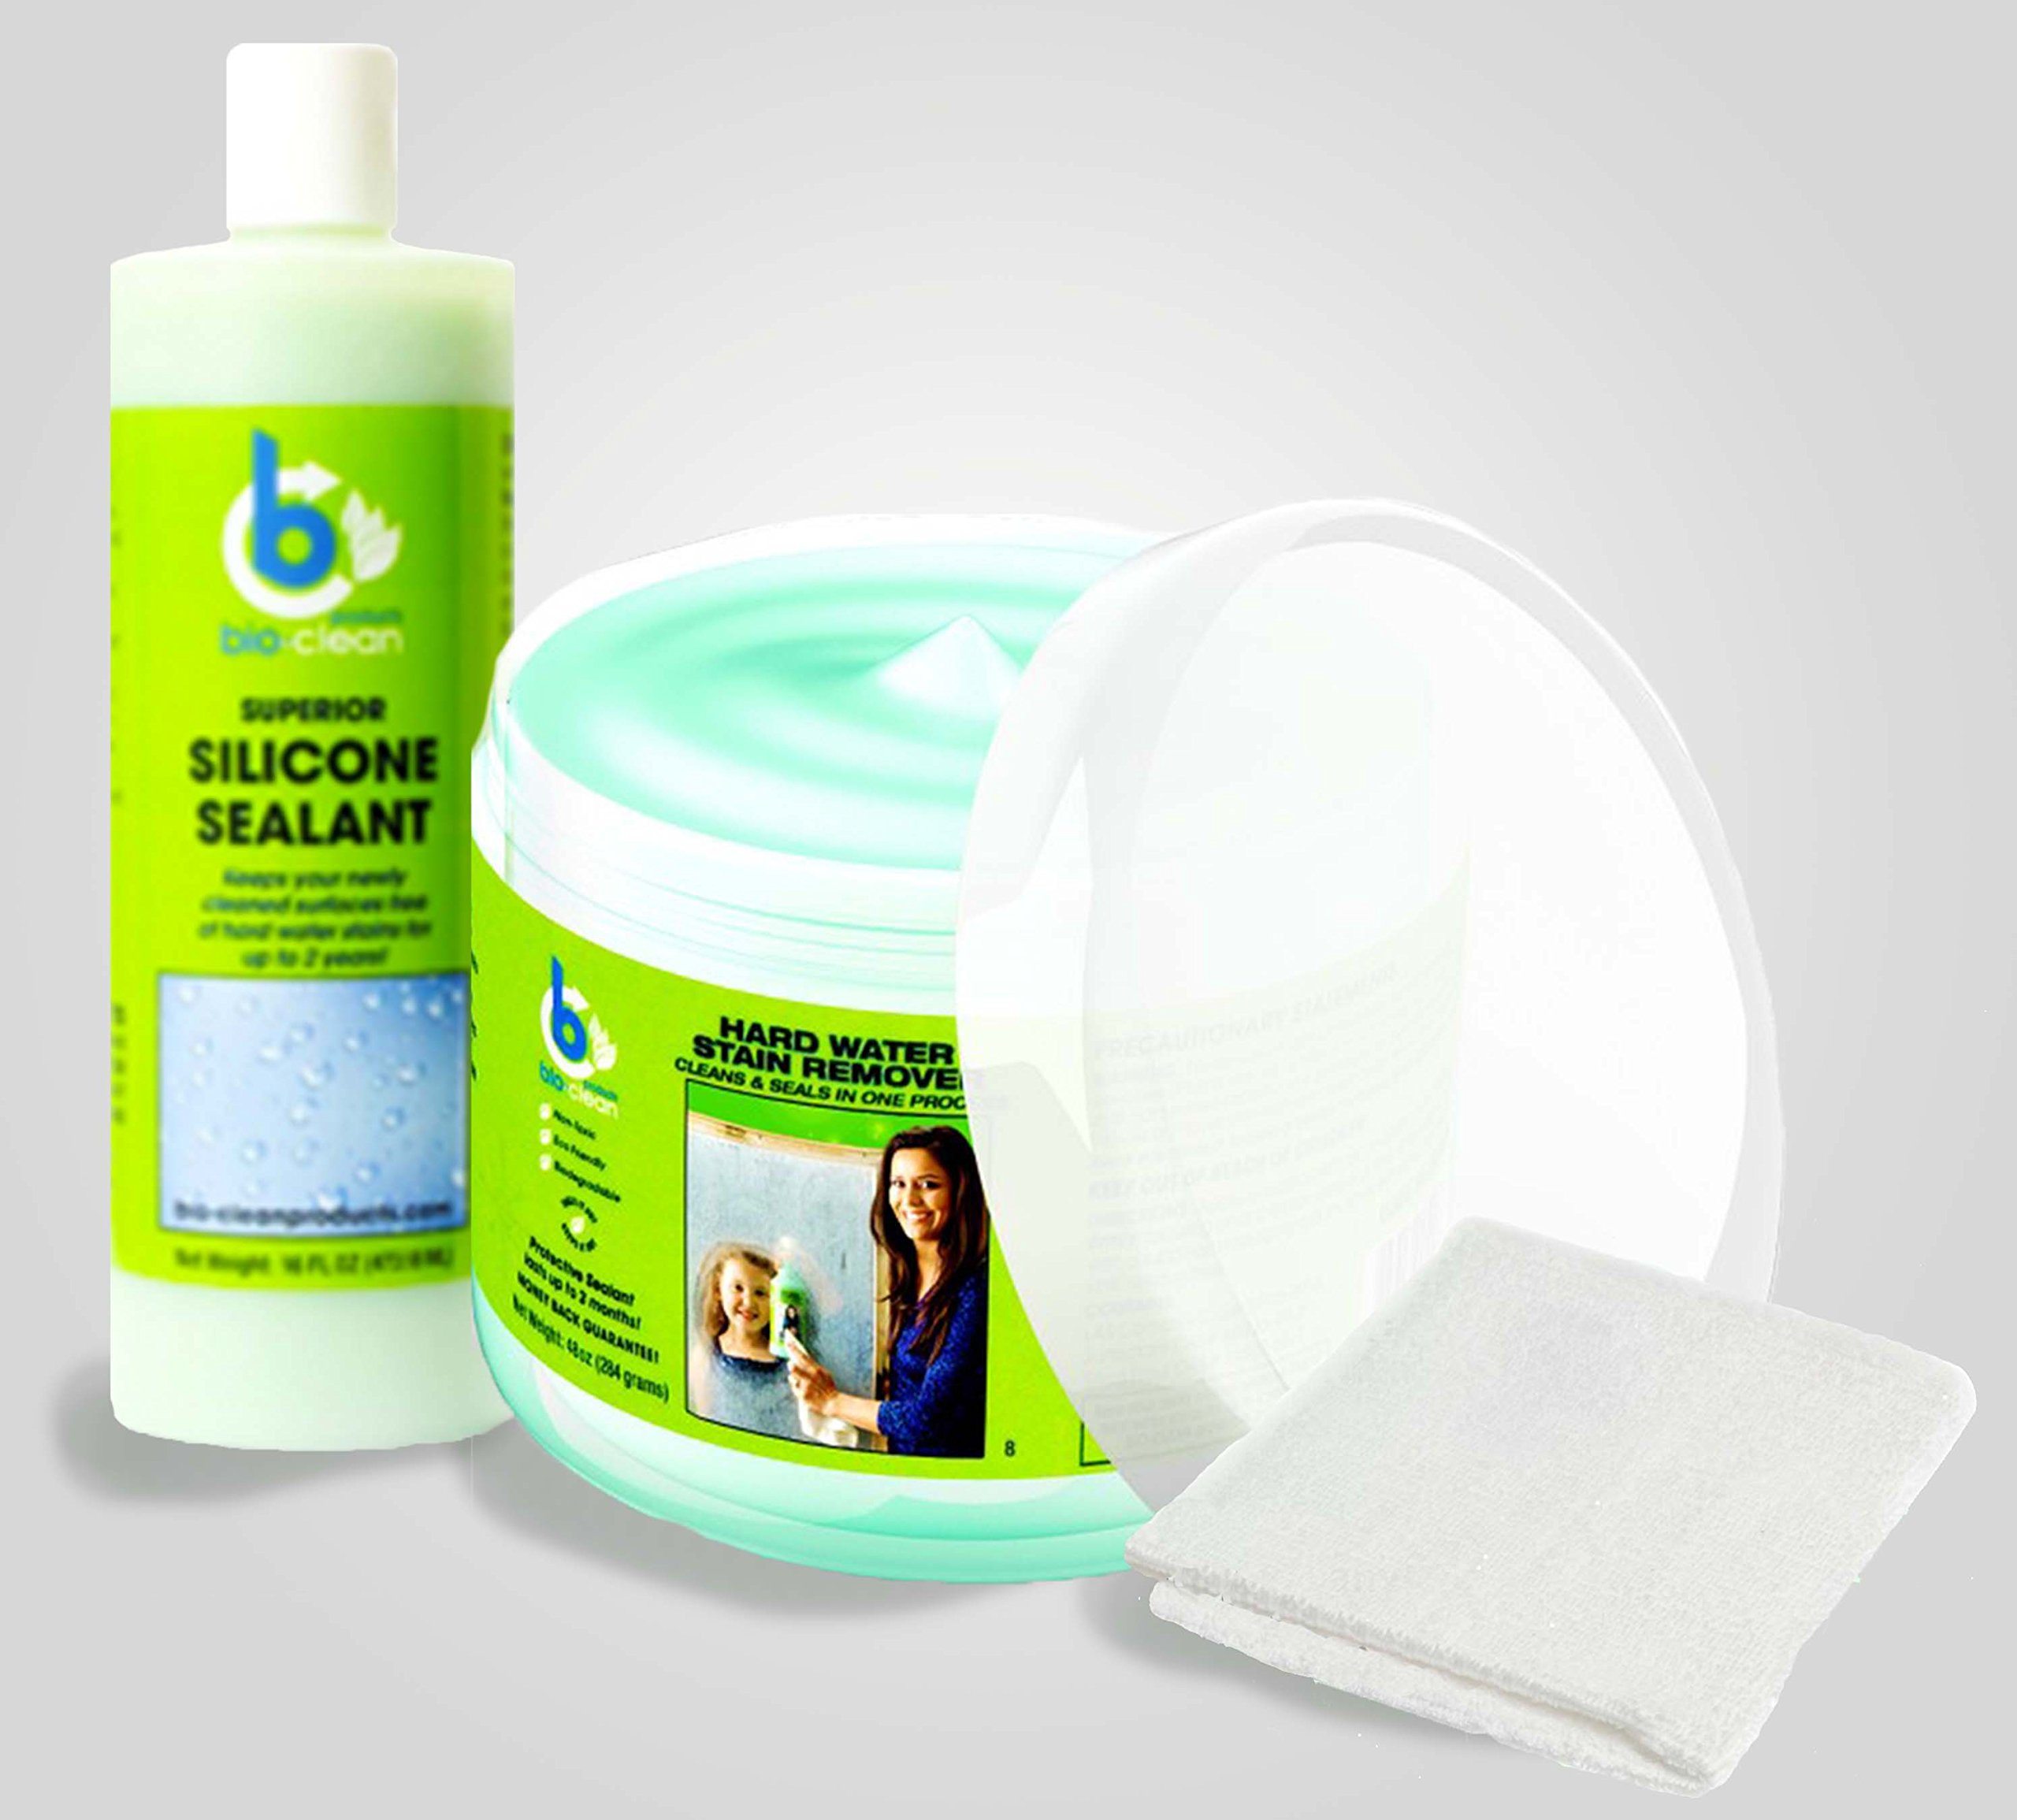 Amazon.com: Bio Clean: Hard Water Stain Remover: Buy 2 Cleaners ...